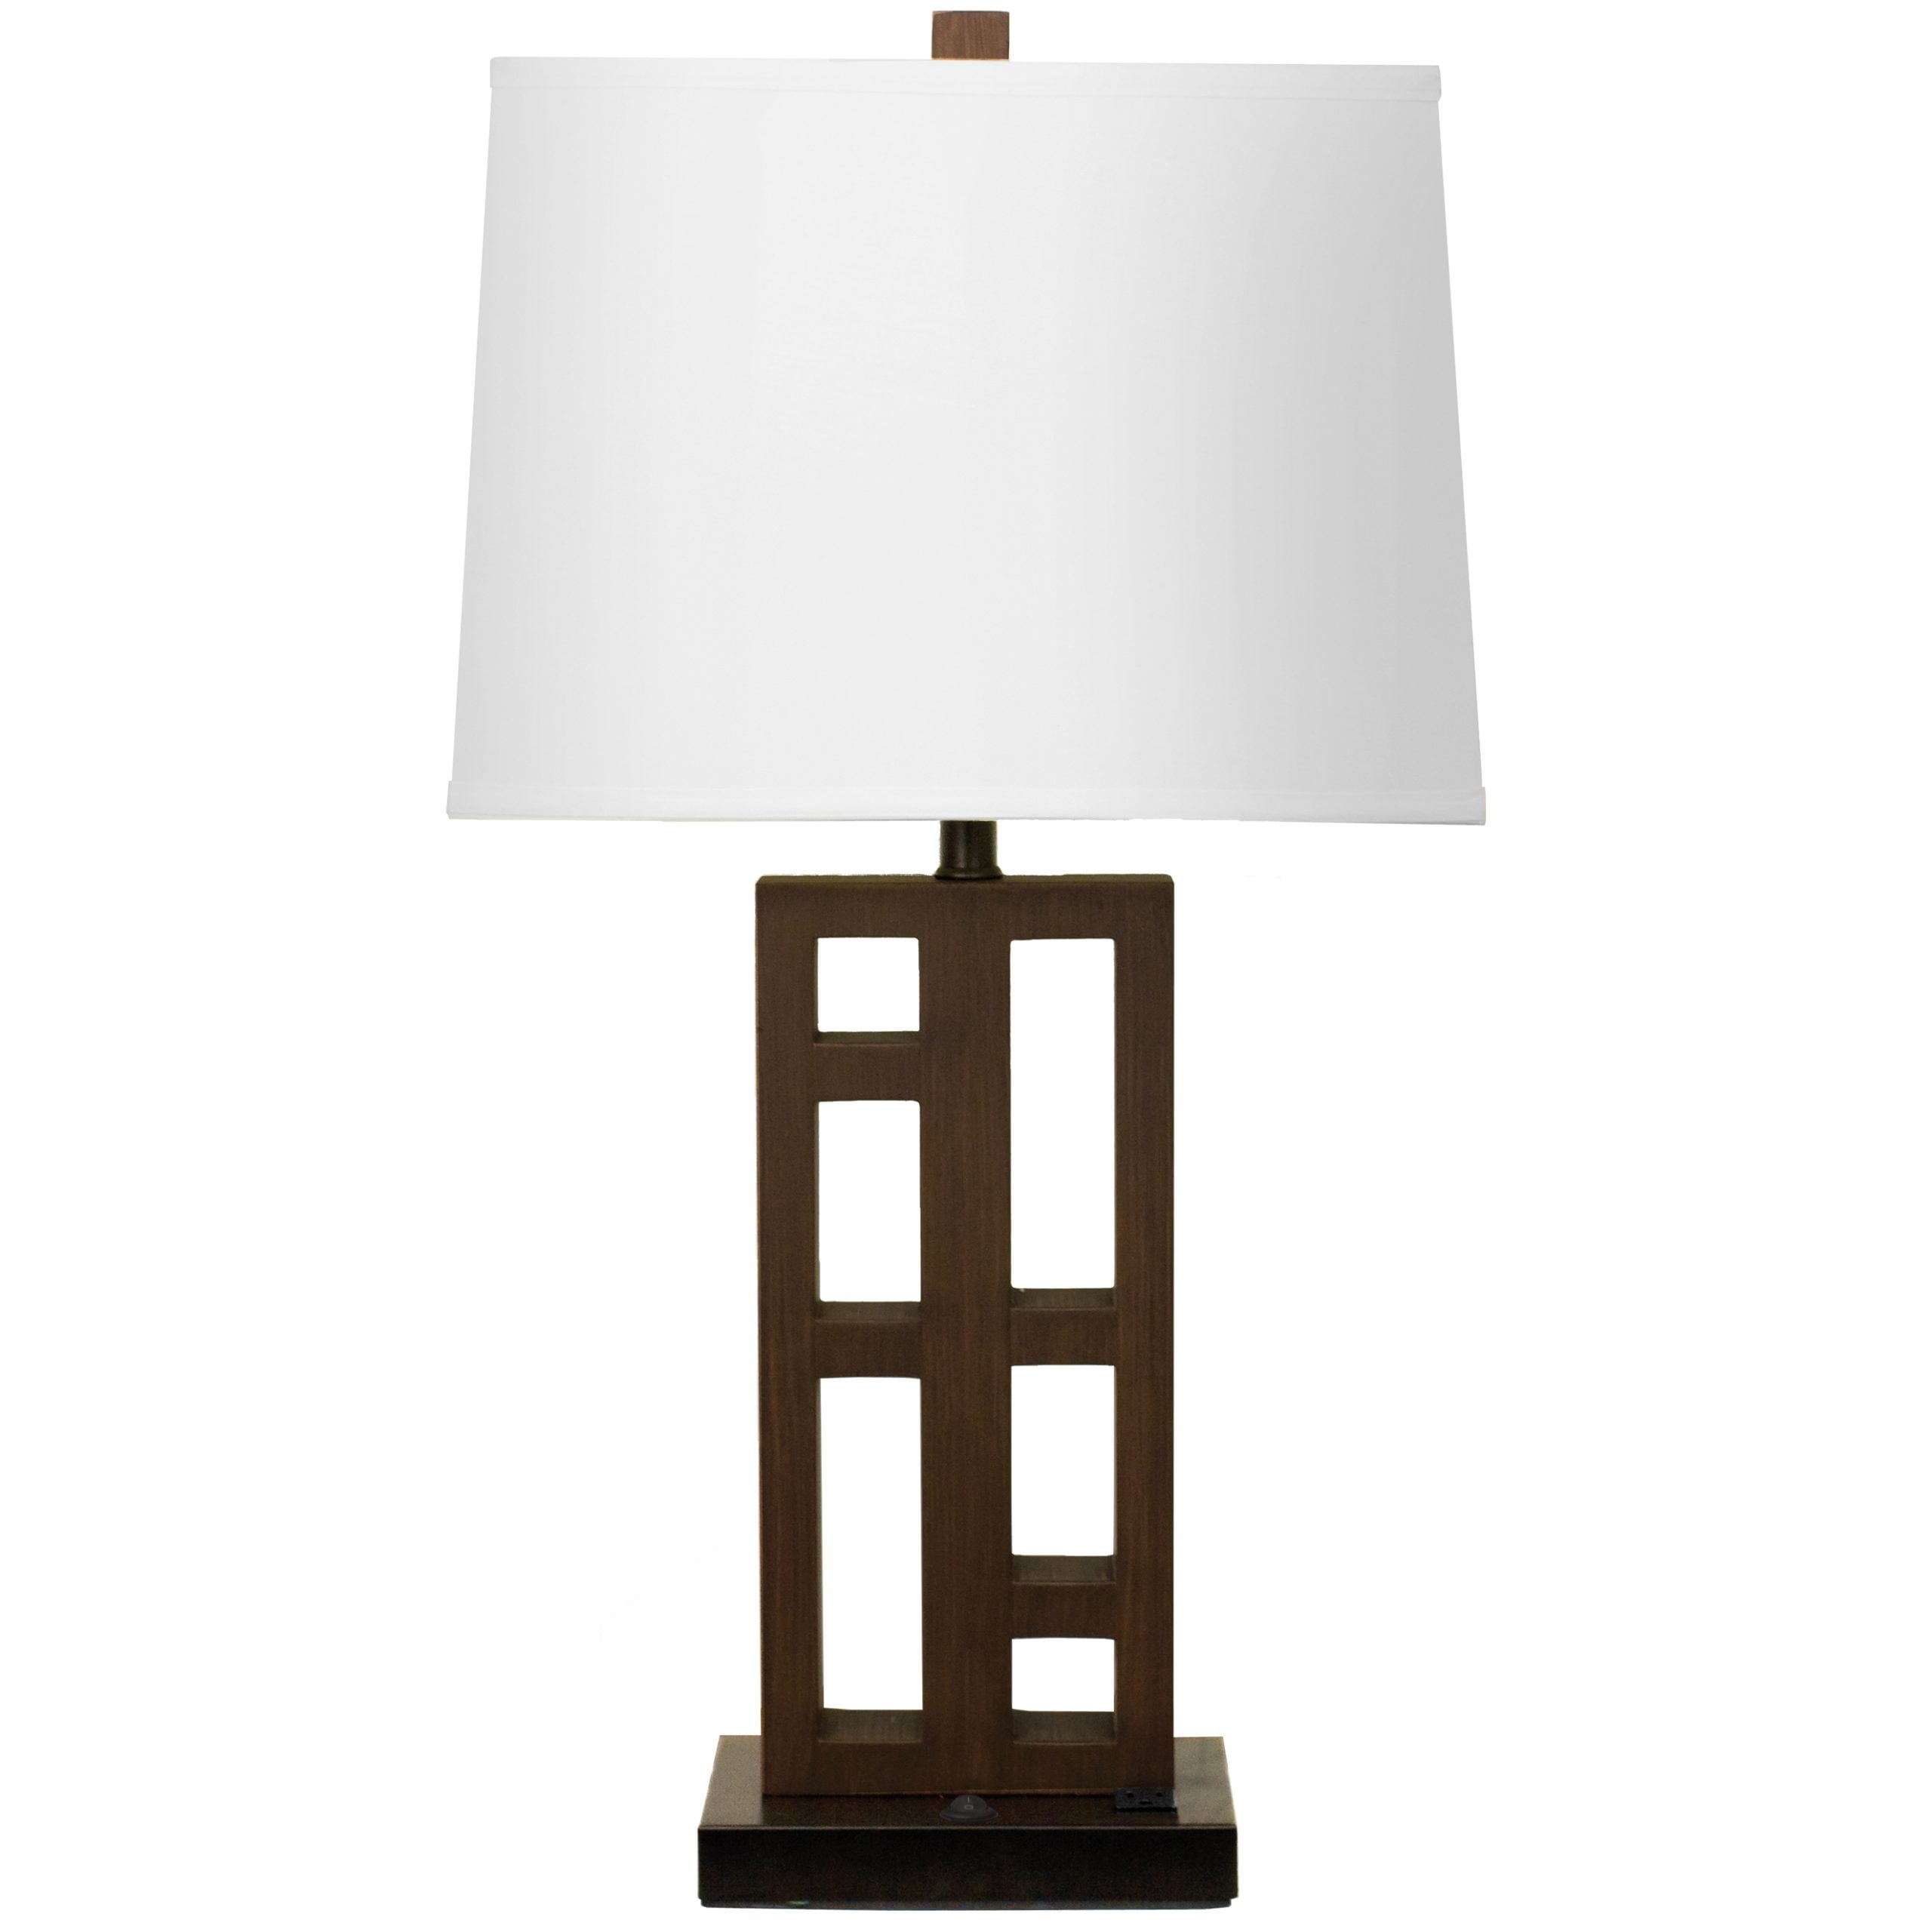 Urban Single Table Lamp with 1 Outlet